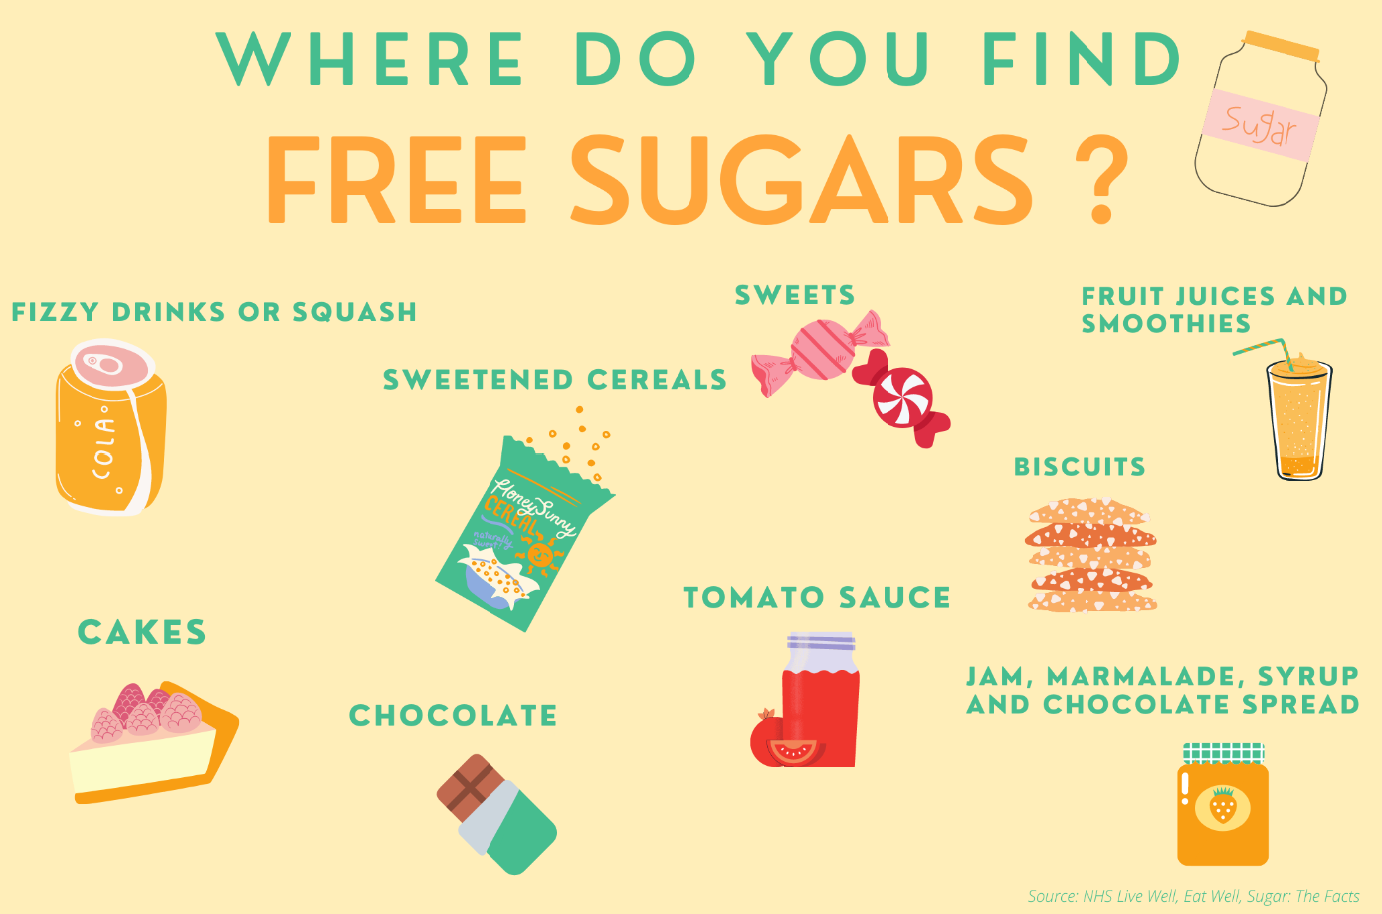 Products containing free sugar